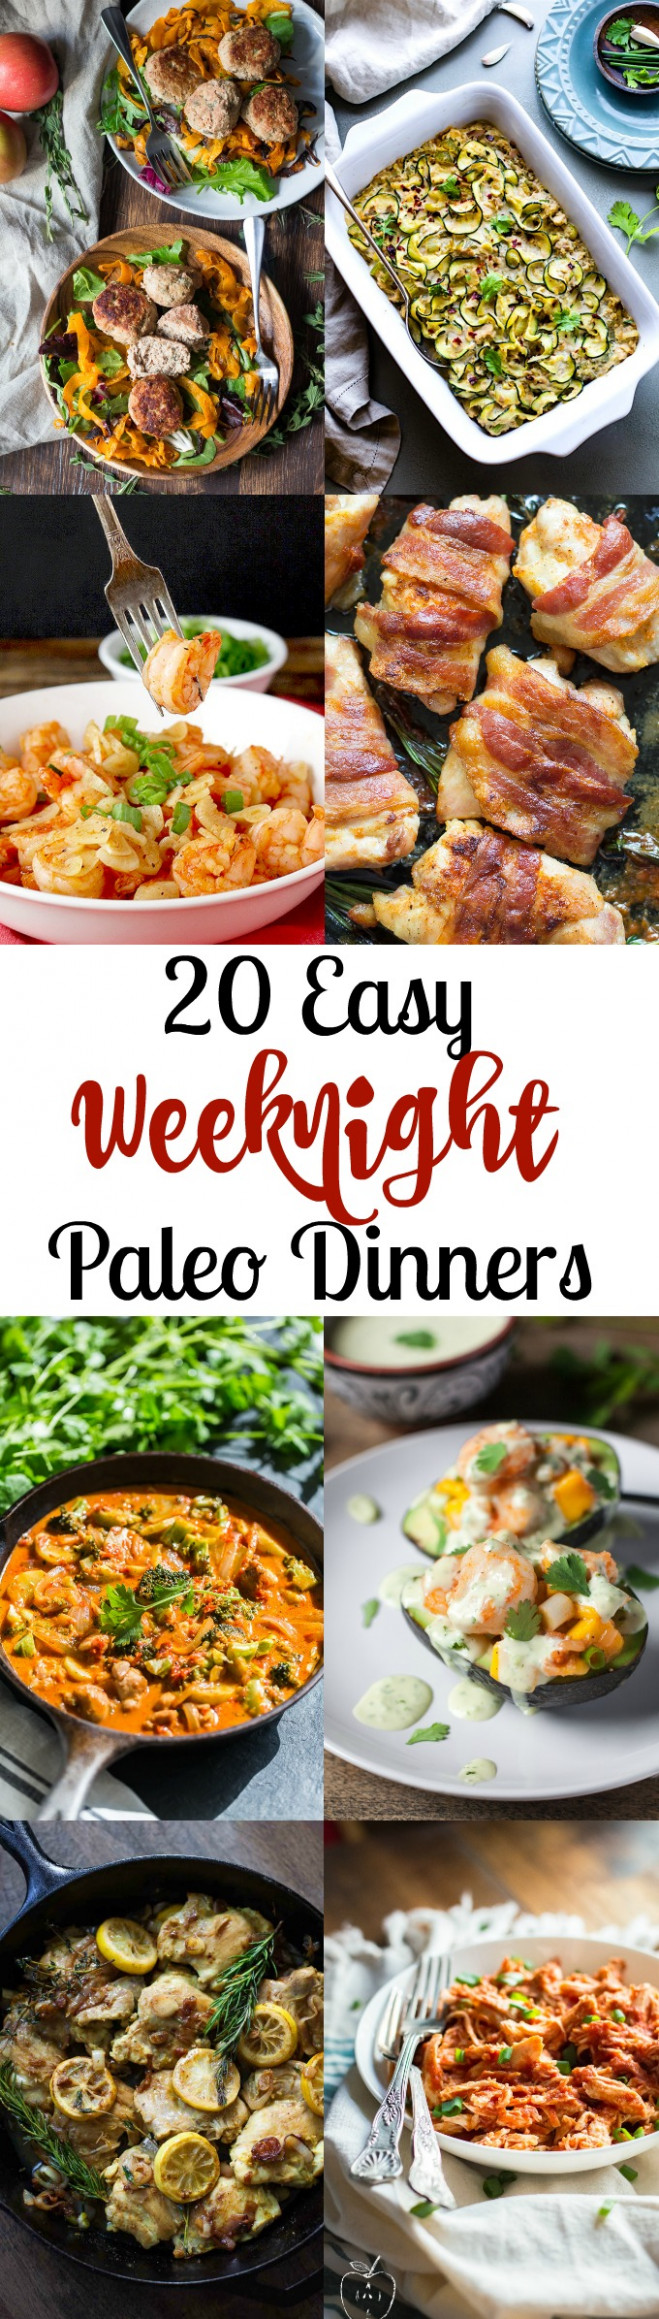 12 Easy Paleo Dinners for Weeknights | The Paleo Running Momma - recipes dinner quick